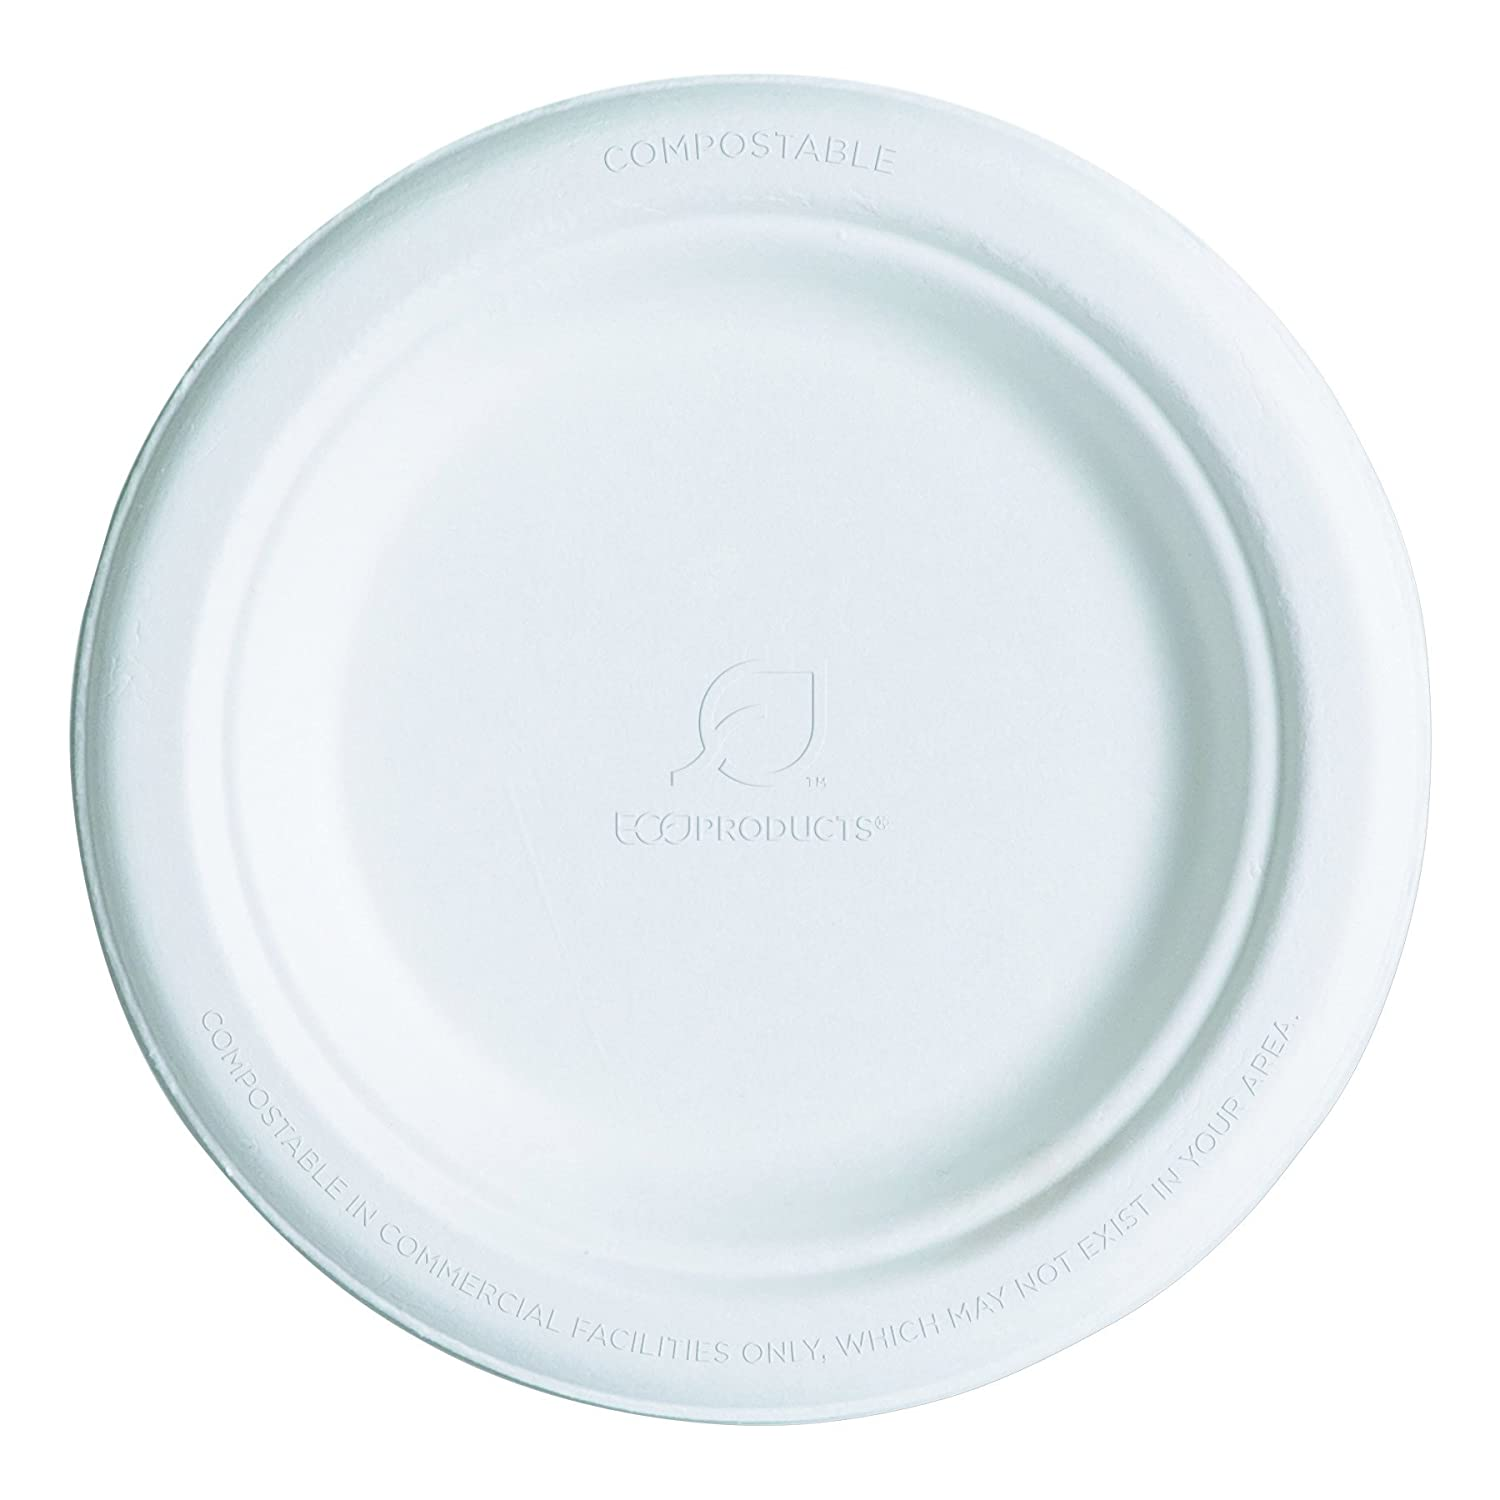 Eco-Products Compostable 6 inch Sugarcane Plates - Case of 1000 - EP-P016